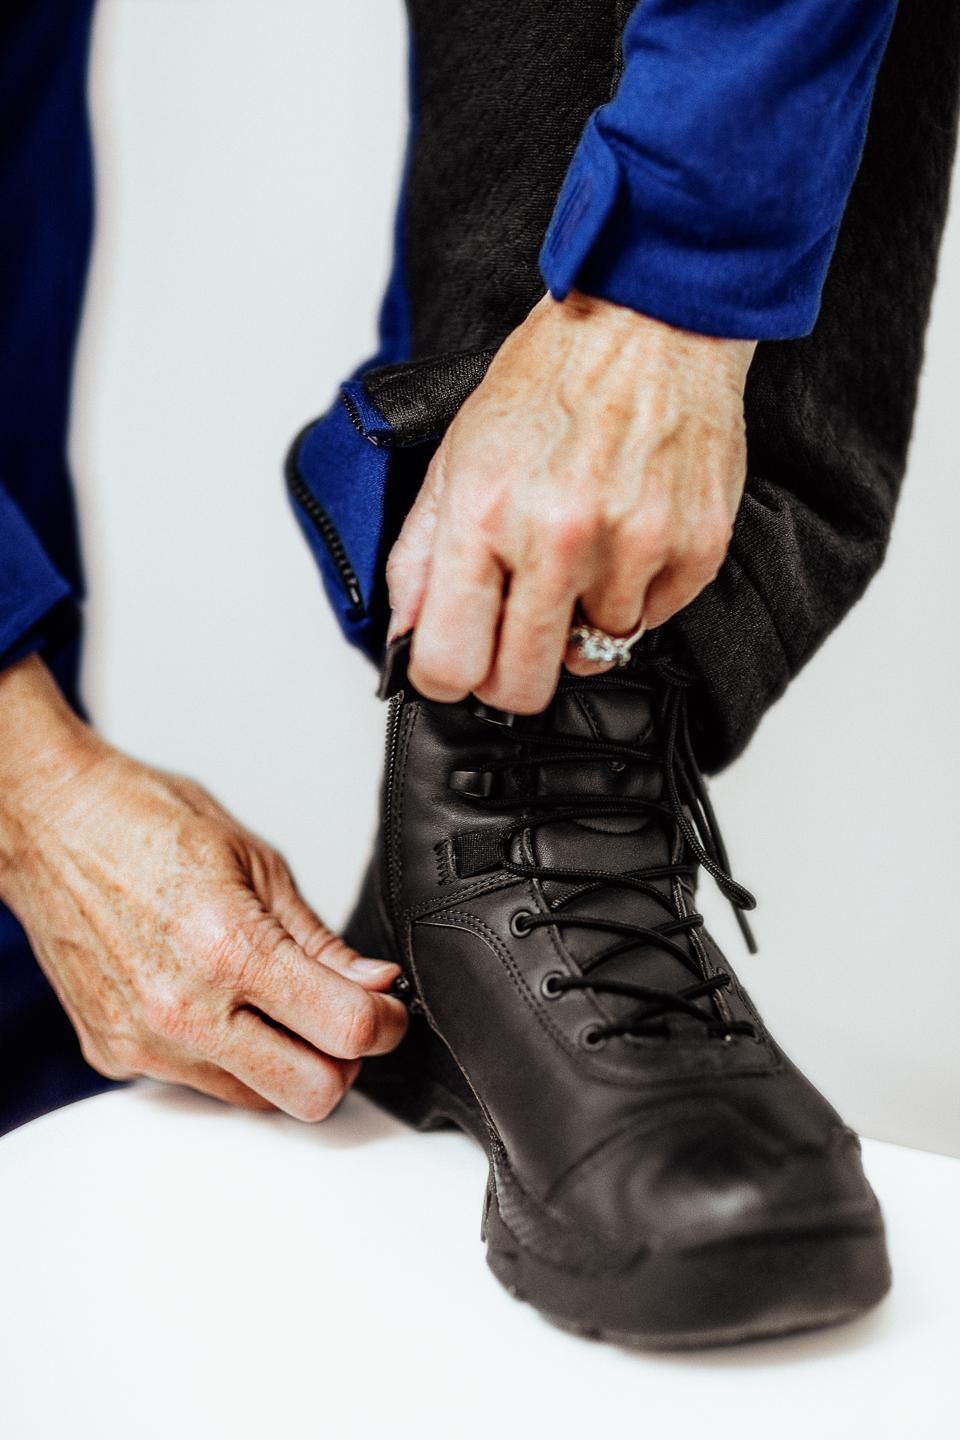 A pilot ties on a boot.